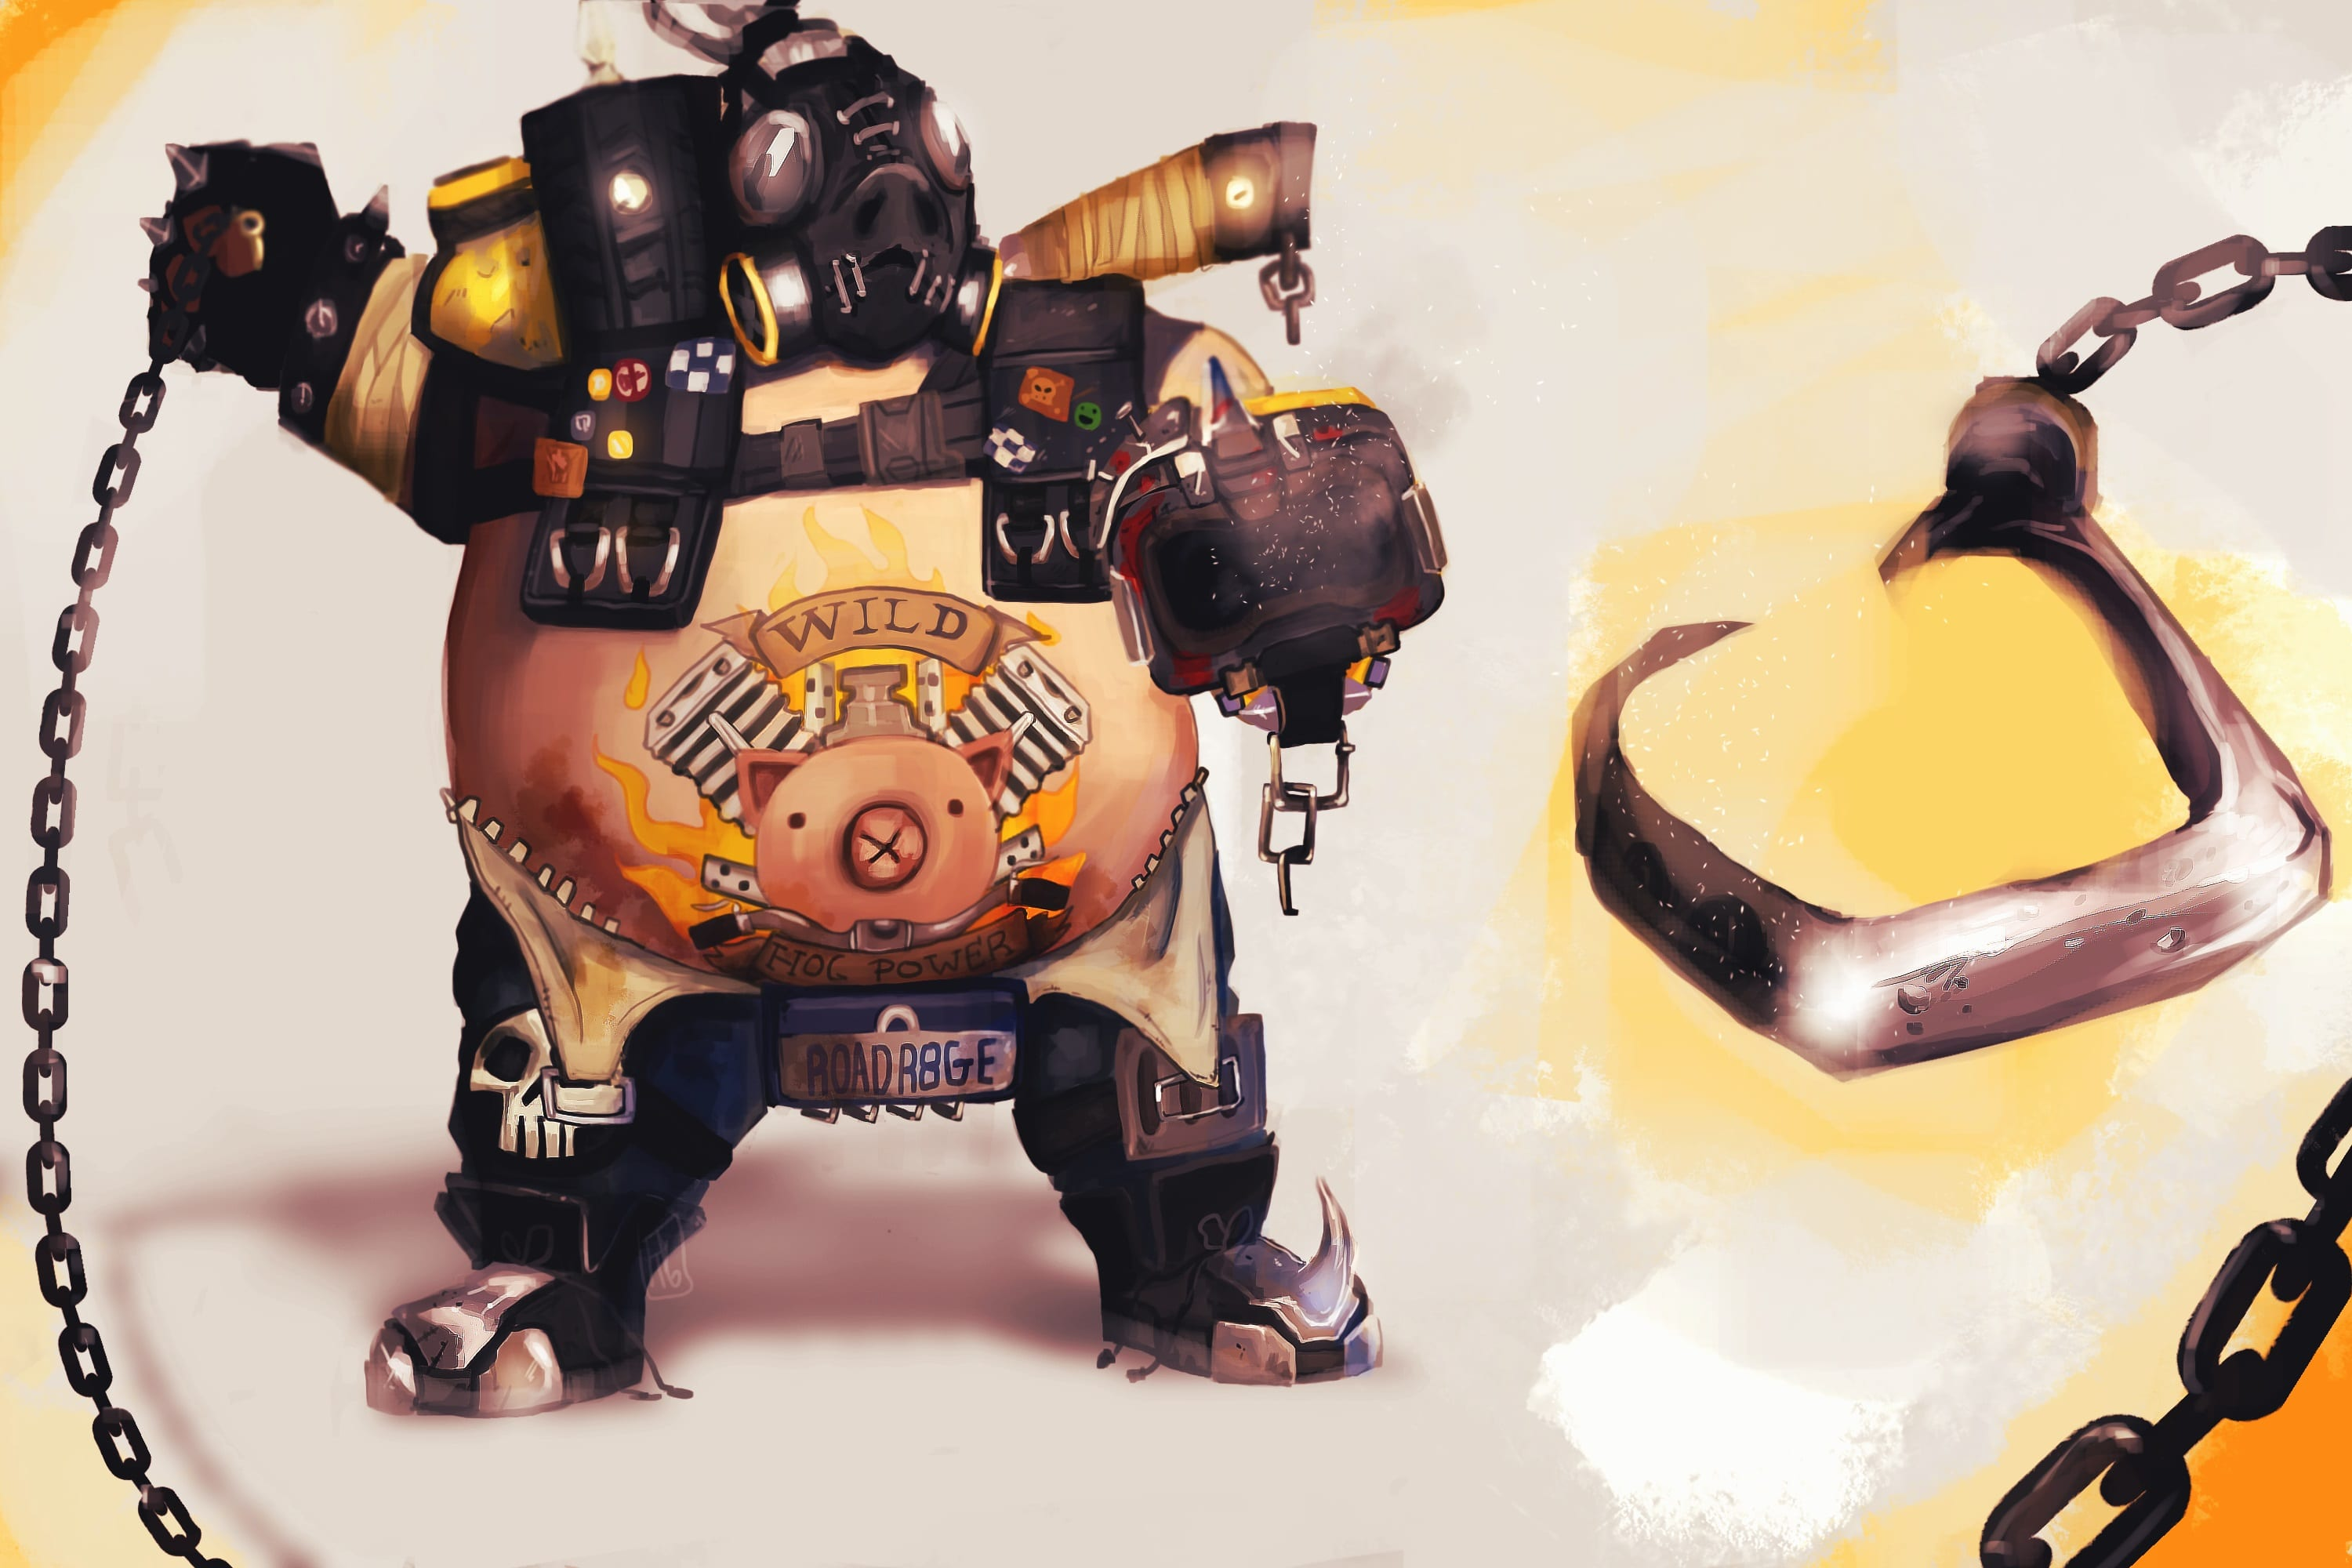 Overwatch : Roadhog Full hd wallpapers